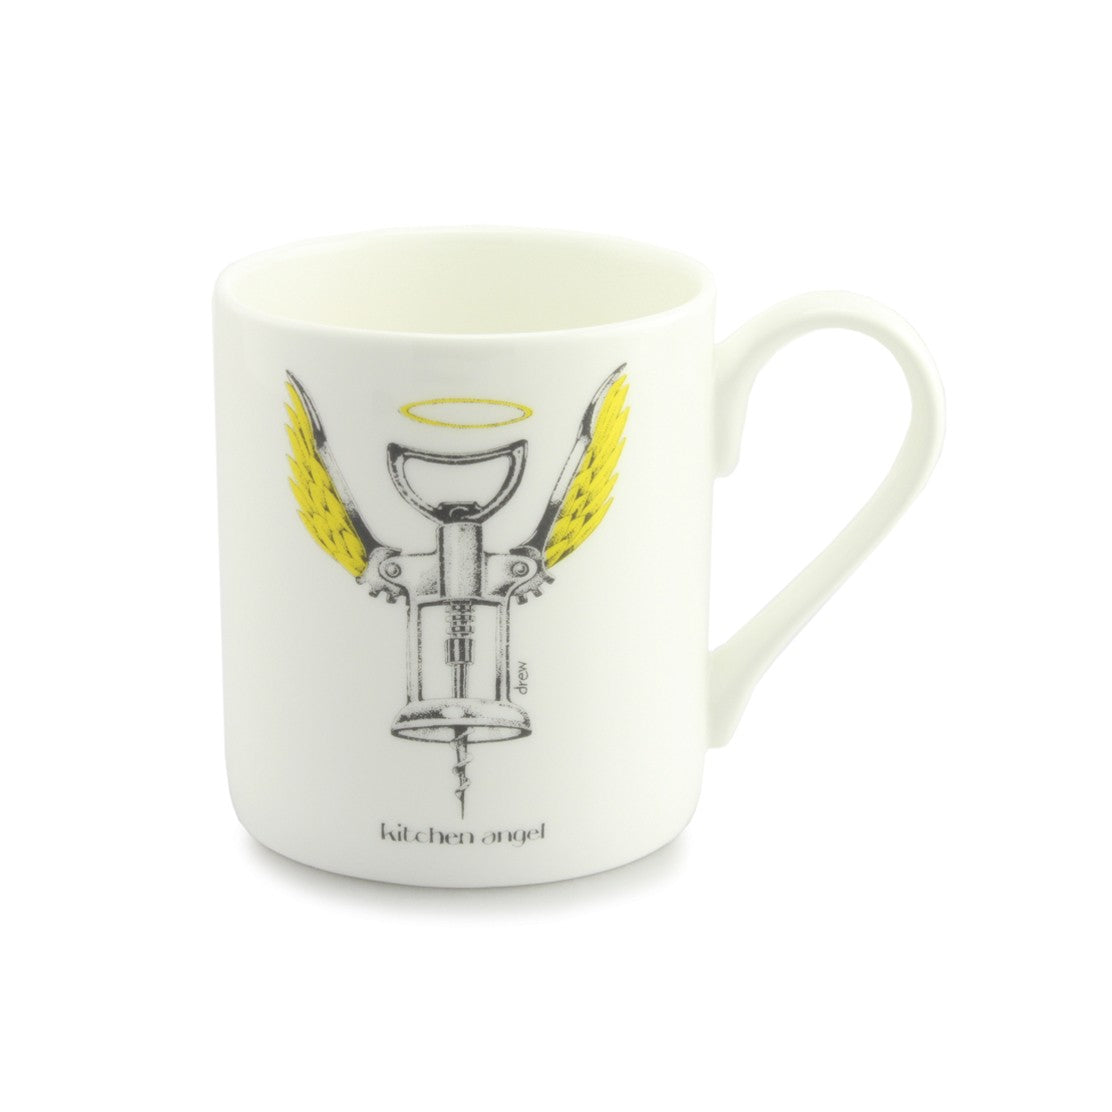 Simon Drew Kitchen Angel China Mug